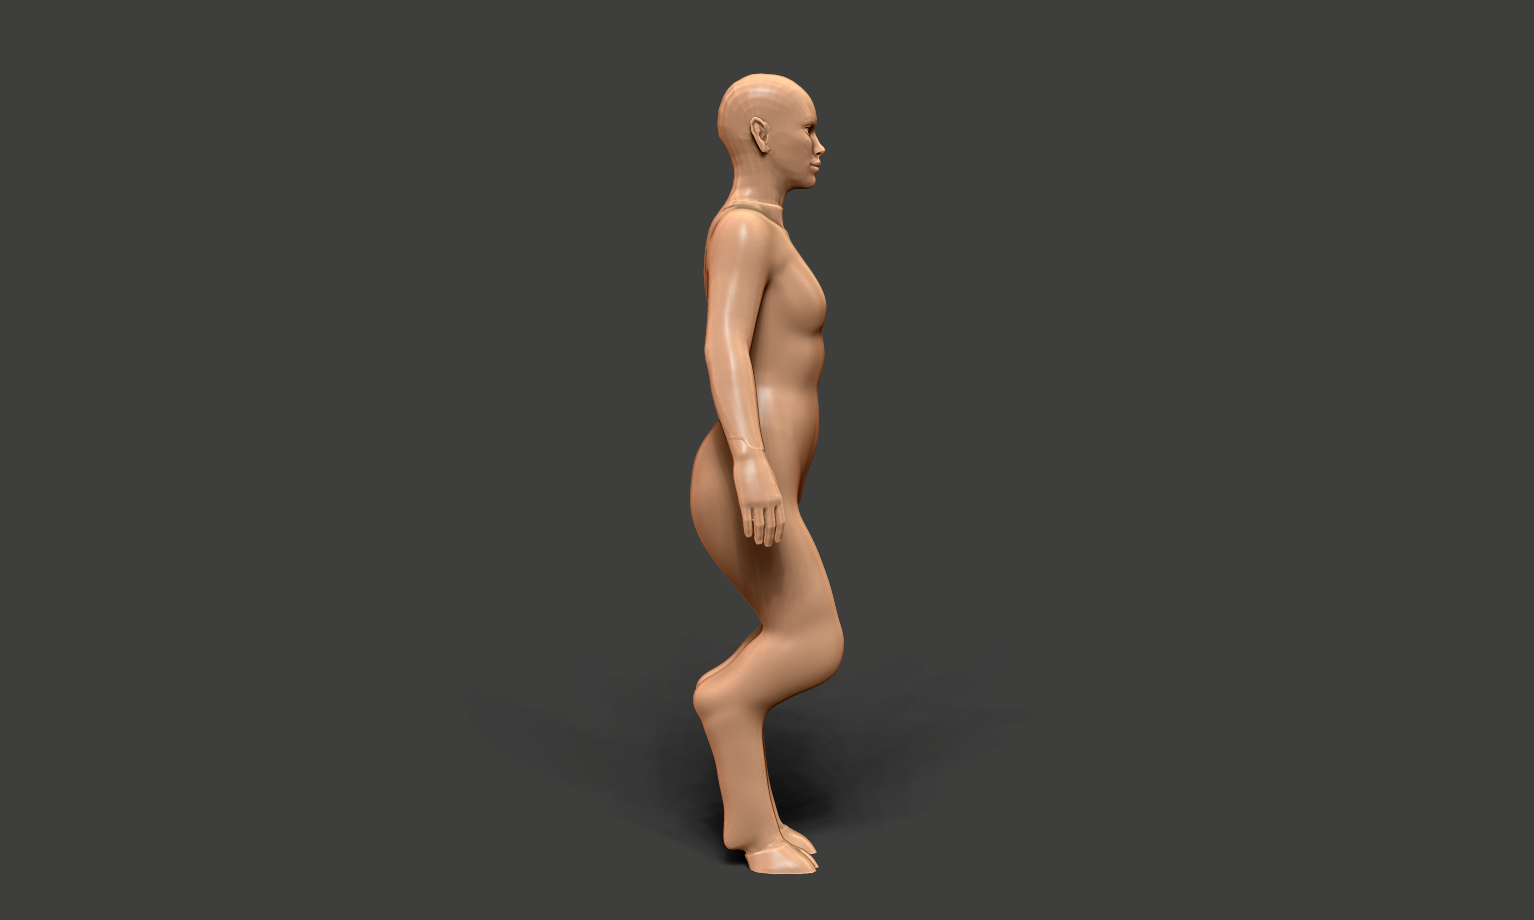 Starting Out - Don't worry, it is always going to look a little weird starting out! But you MUST get that general shape down before you start detailing.